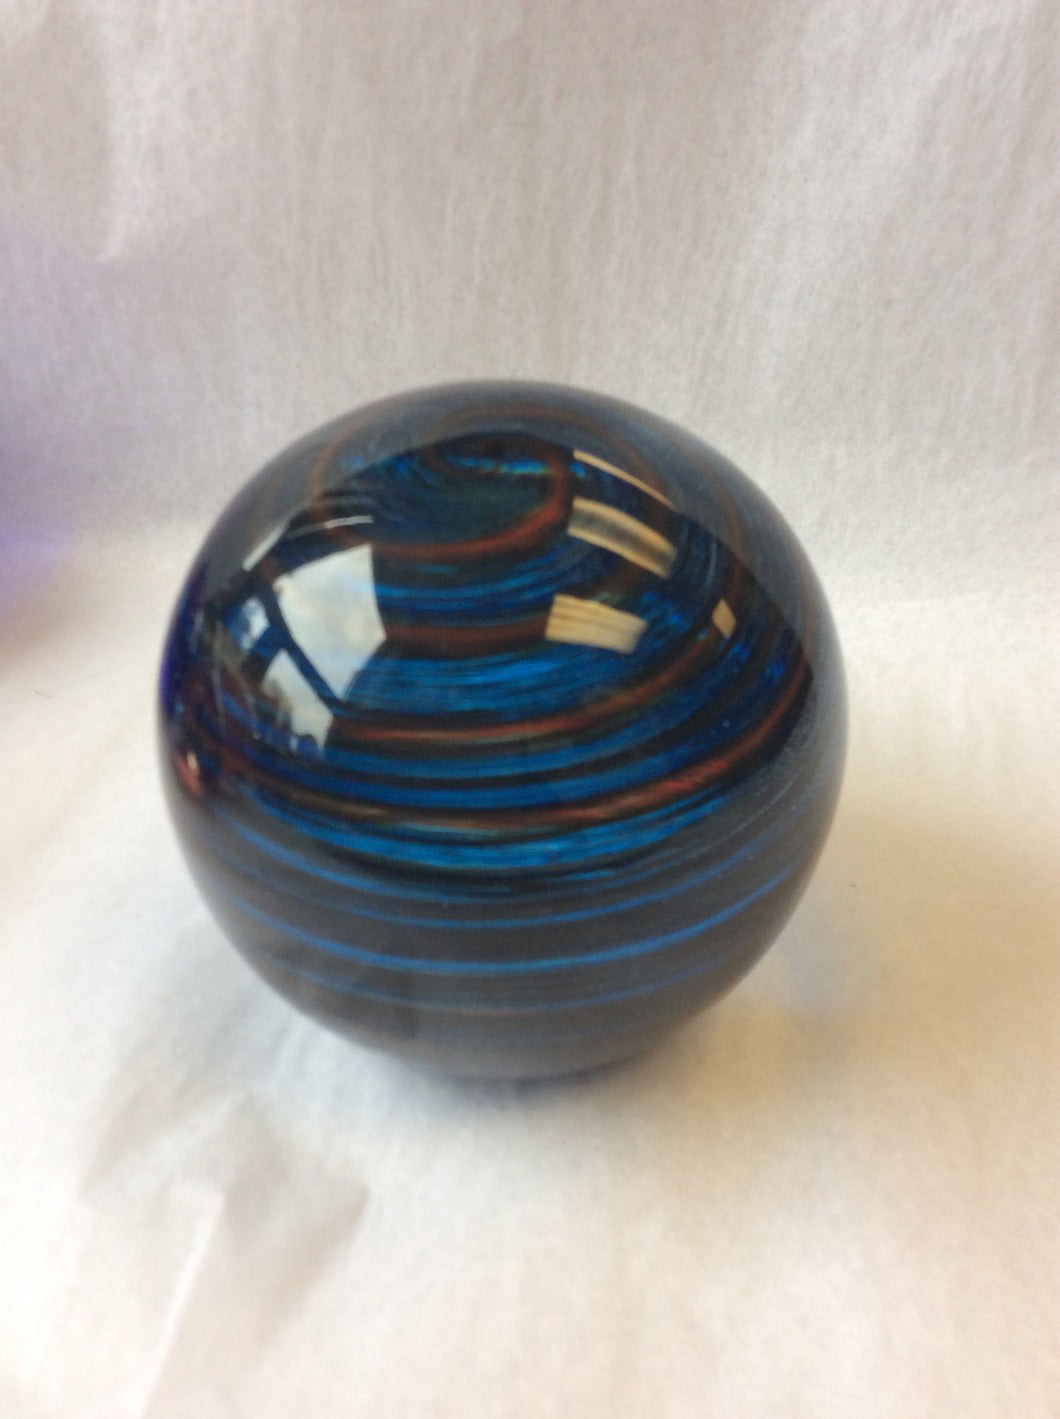 Blue & Orange Paperweight (8GR1020)